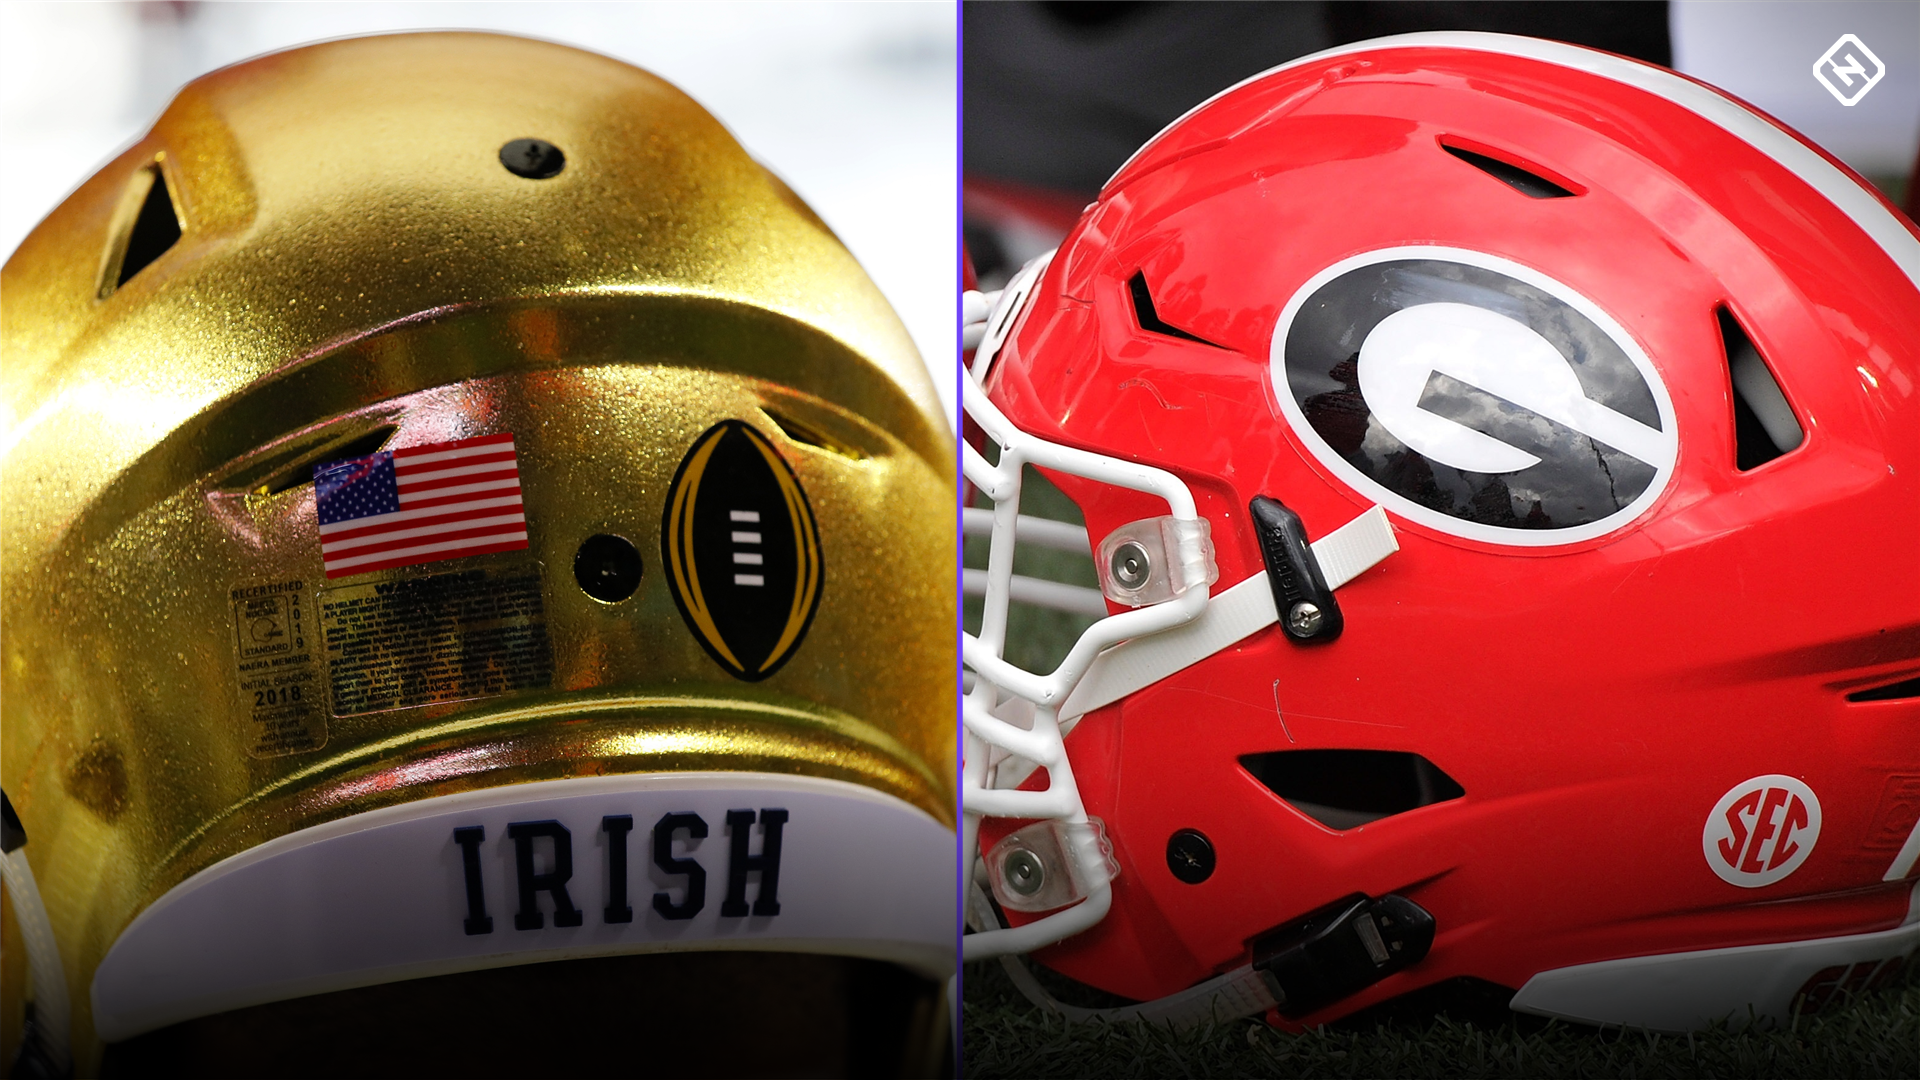 Georgia store removes Irish Spring soap from shelves ahead of Georgia-Notre Dame game